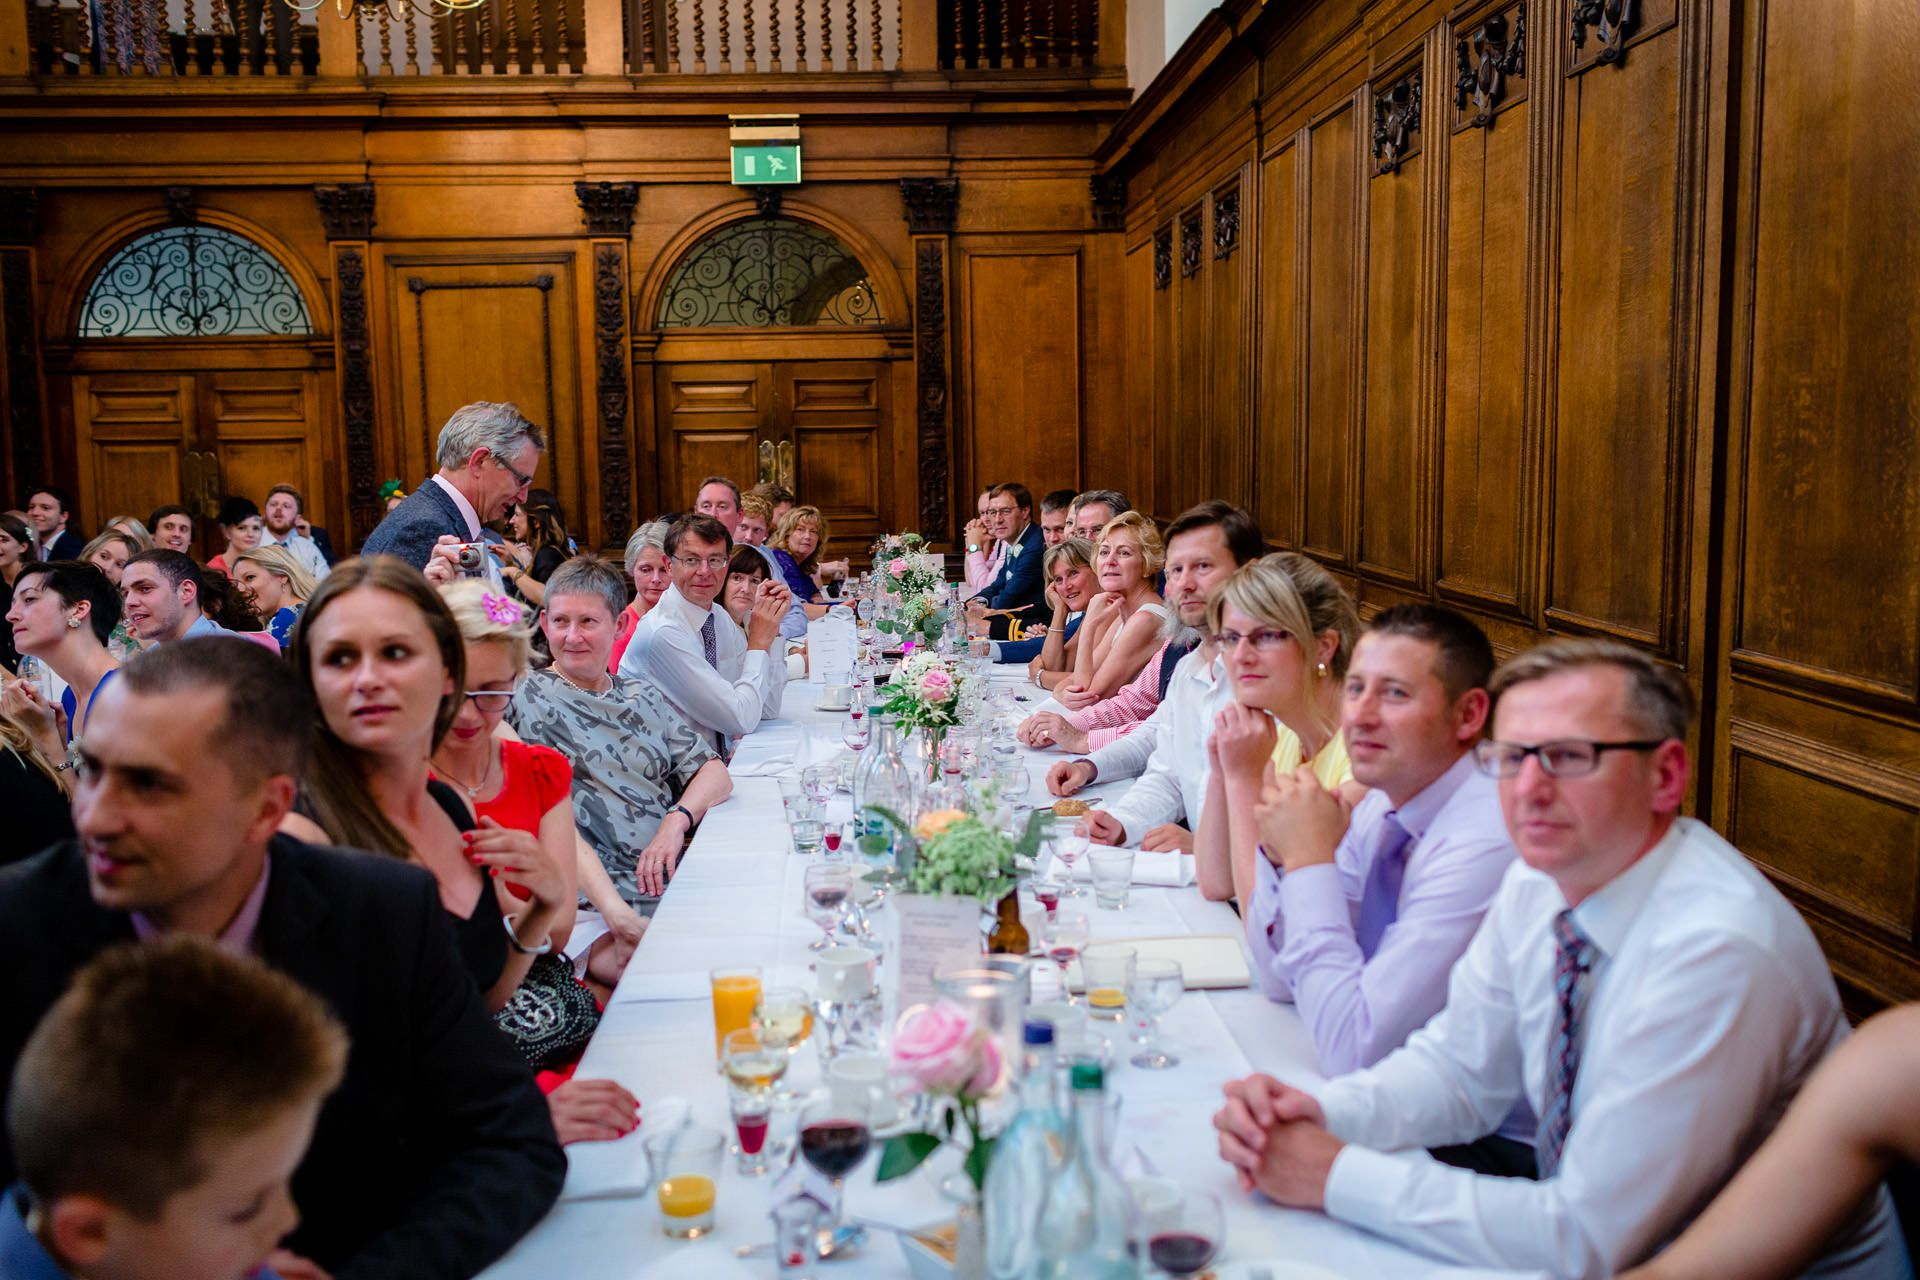 many guests at the long wedding table are listening the speach